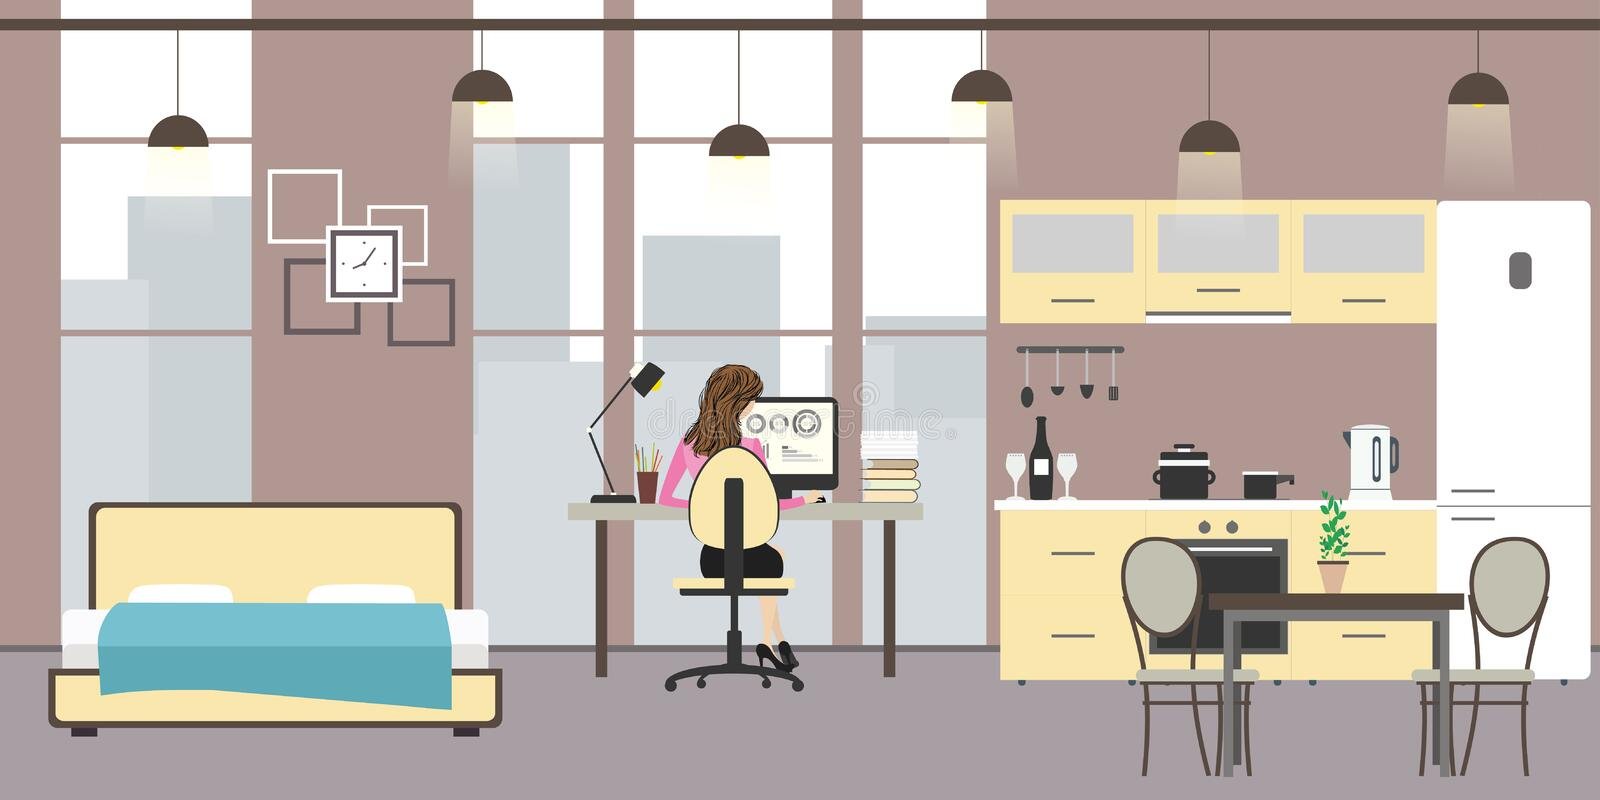 Studio apartment with big windows. Bed, workspace and kitchen with utensils,woman sitting at the table and working, flat vector illustration vector illustration